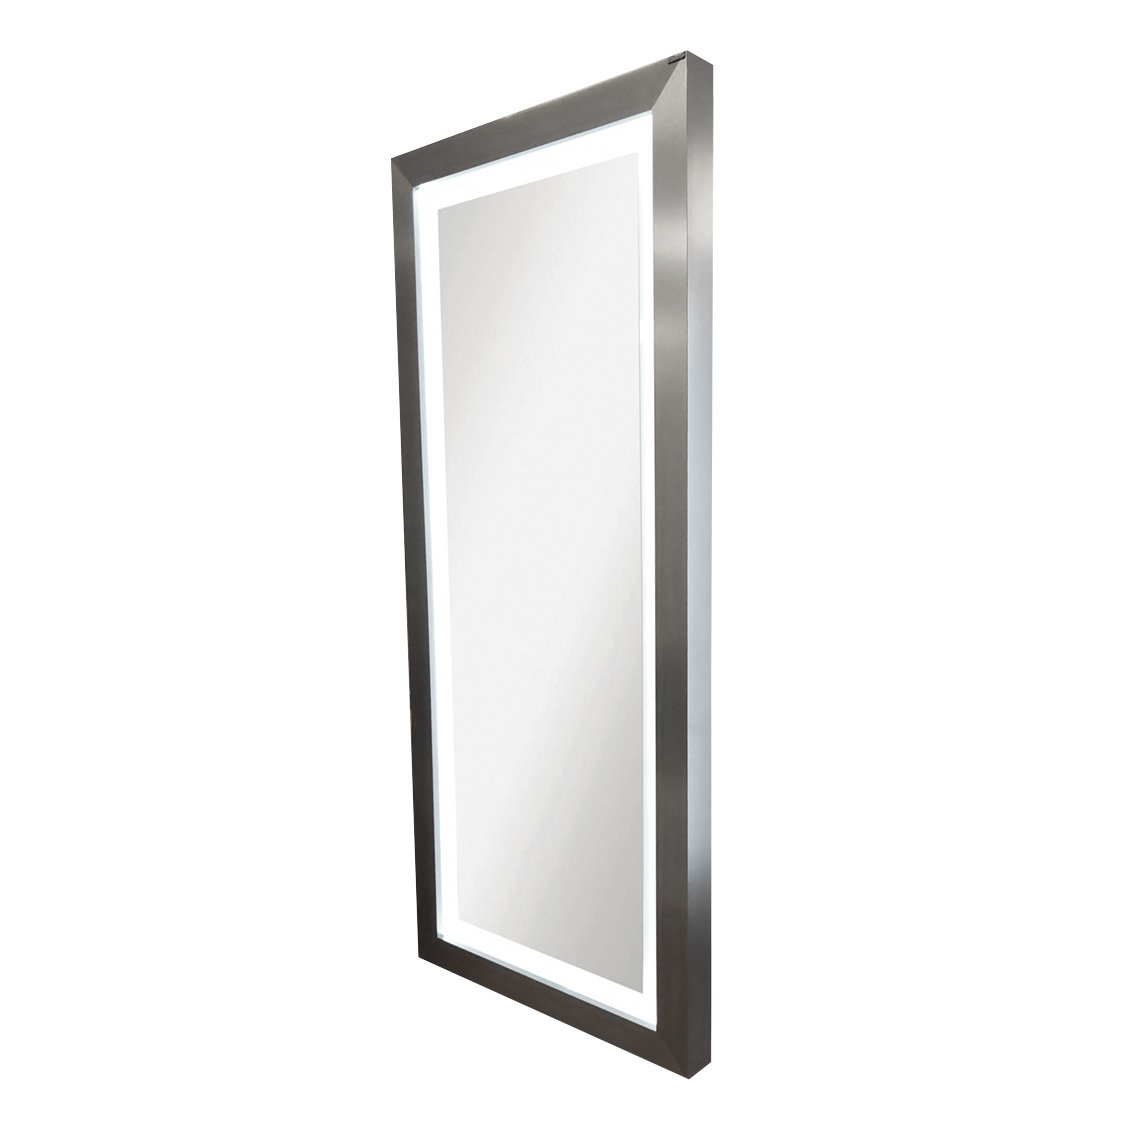 Collins 6641-32 Zada Styling Mirror